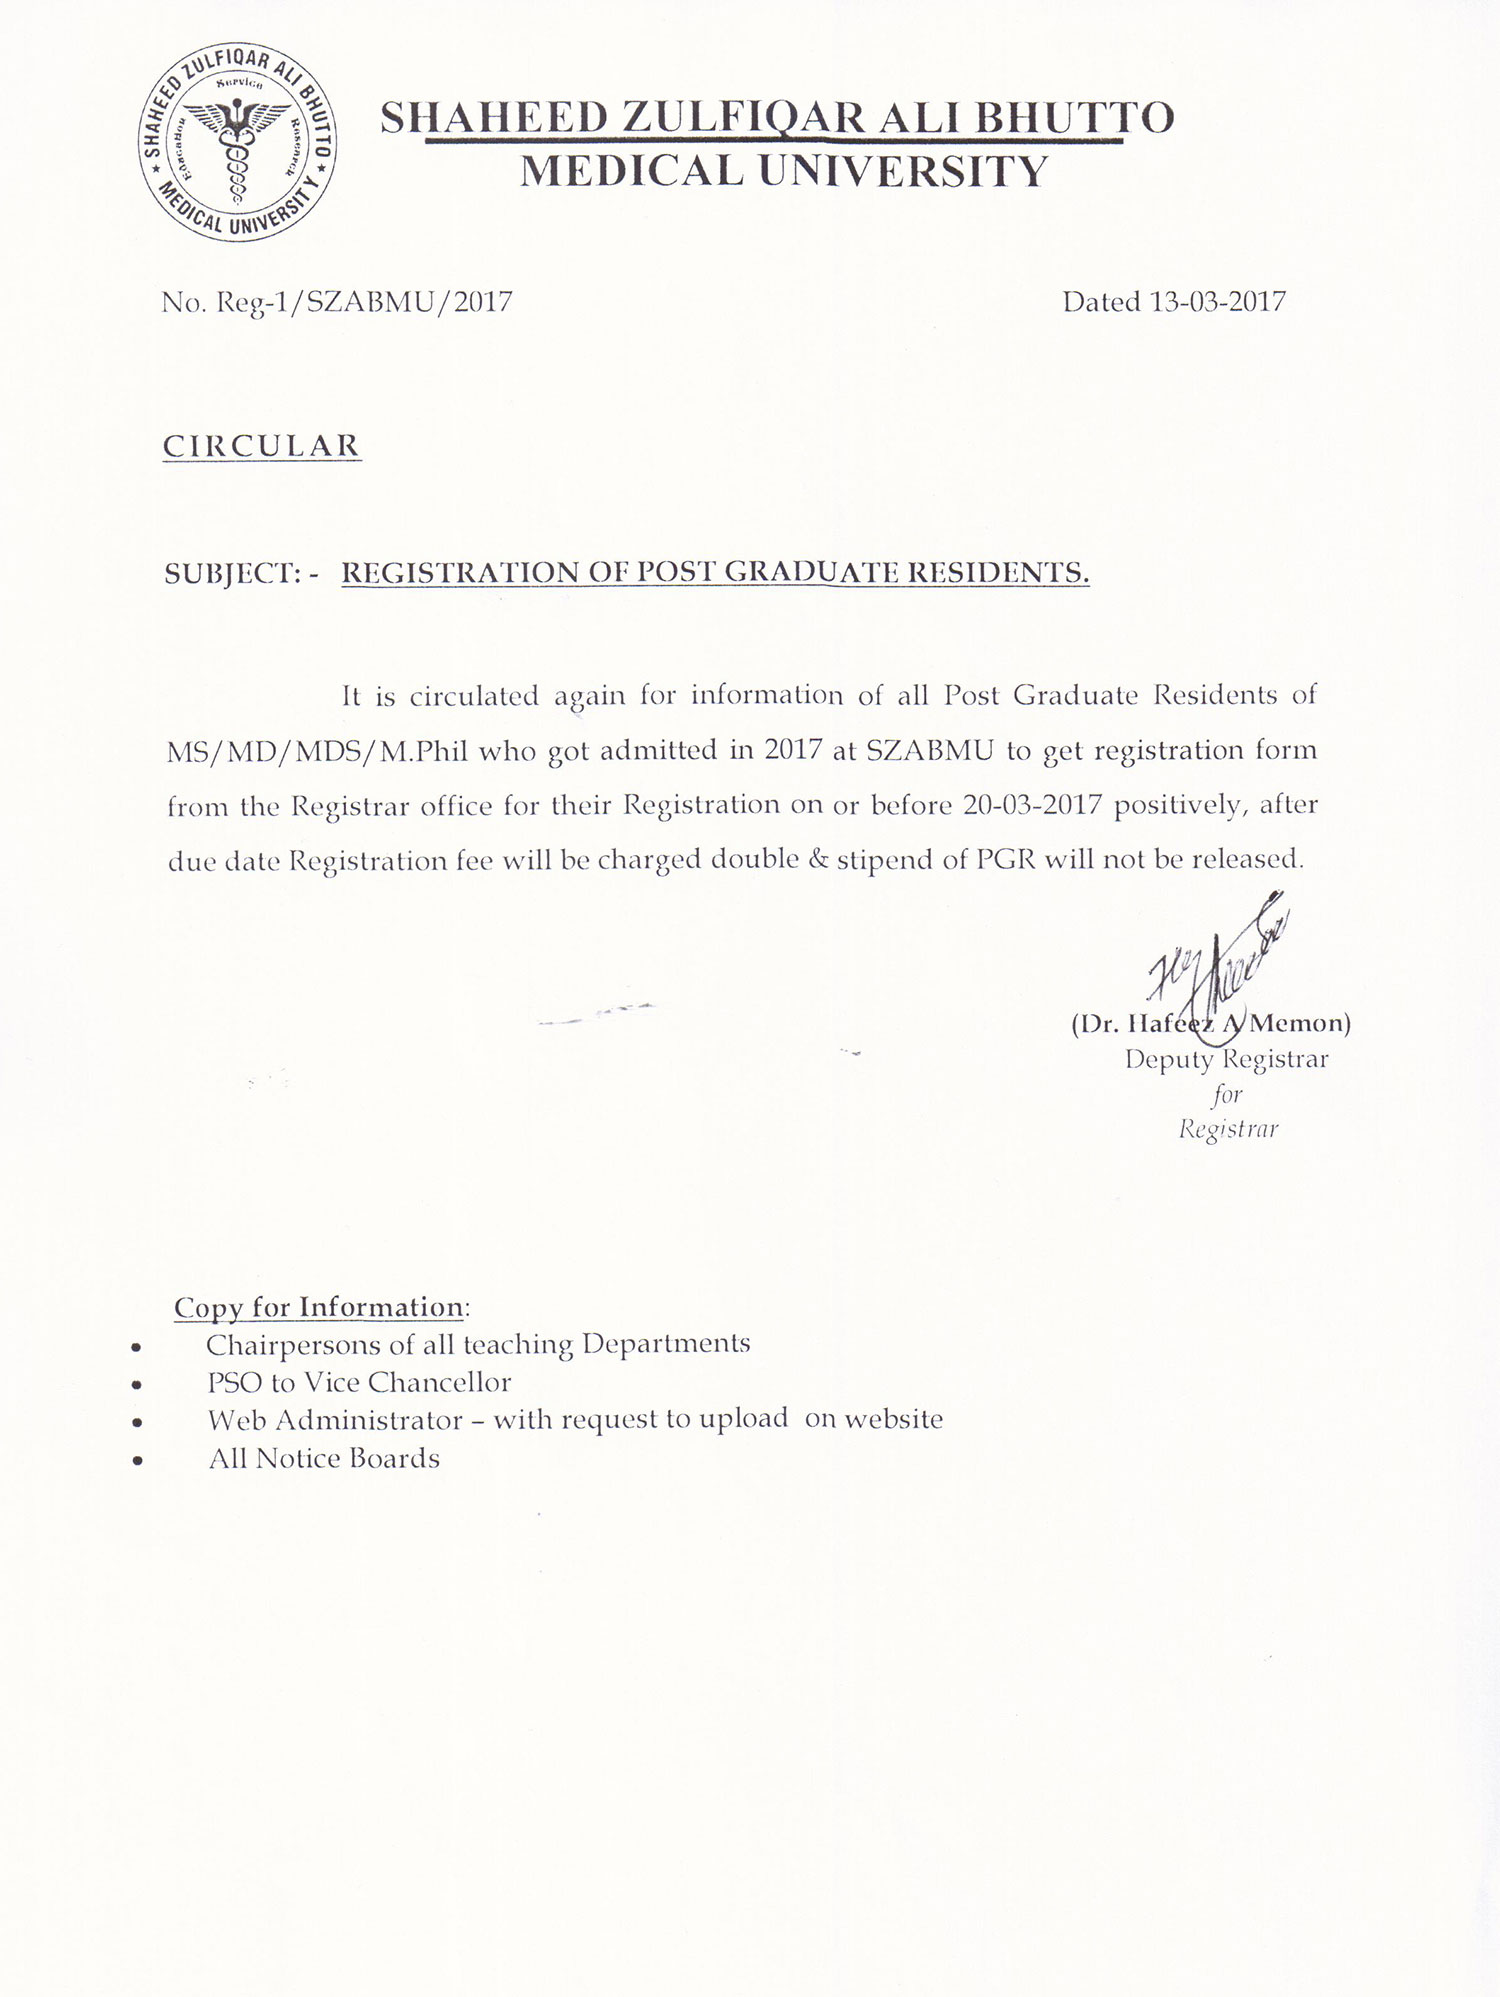 Date Extended for Registration of Post Graduate Residents who got admitted in 2017